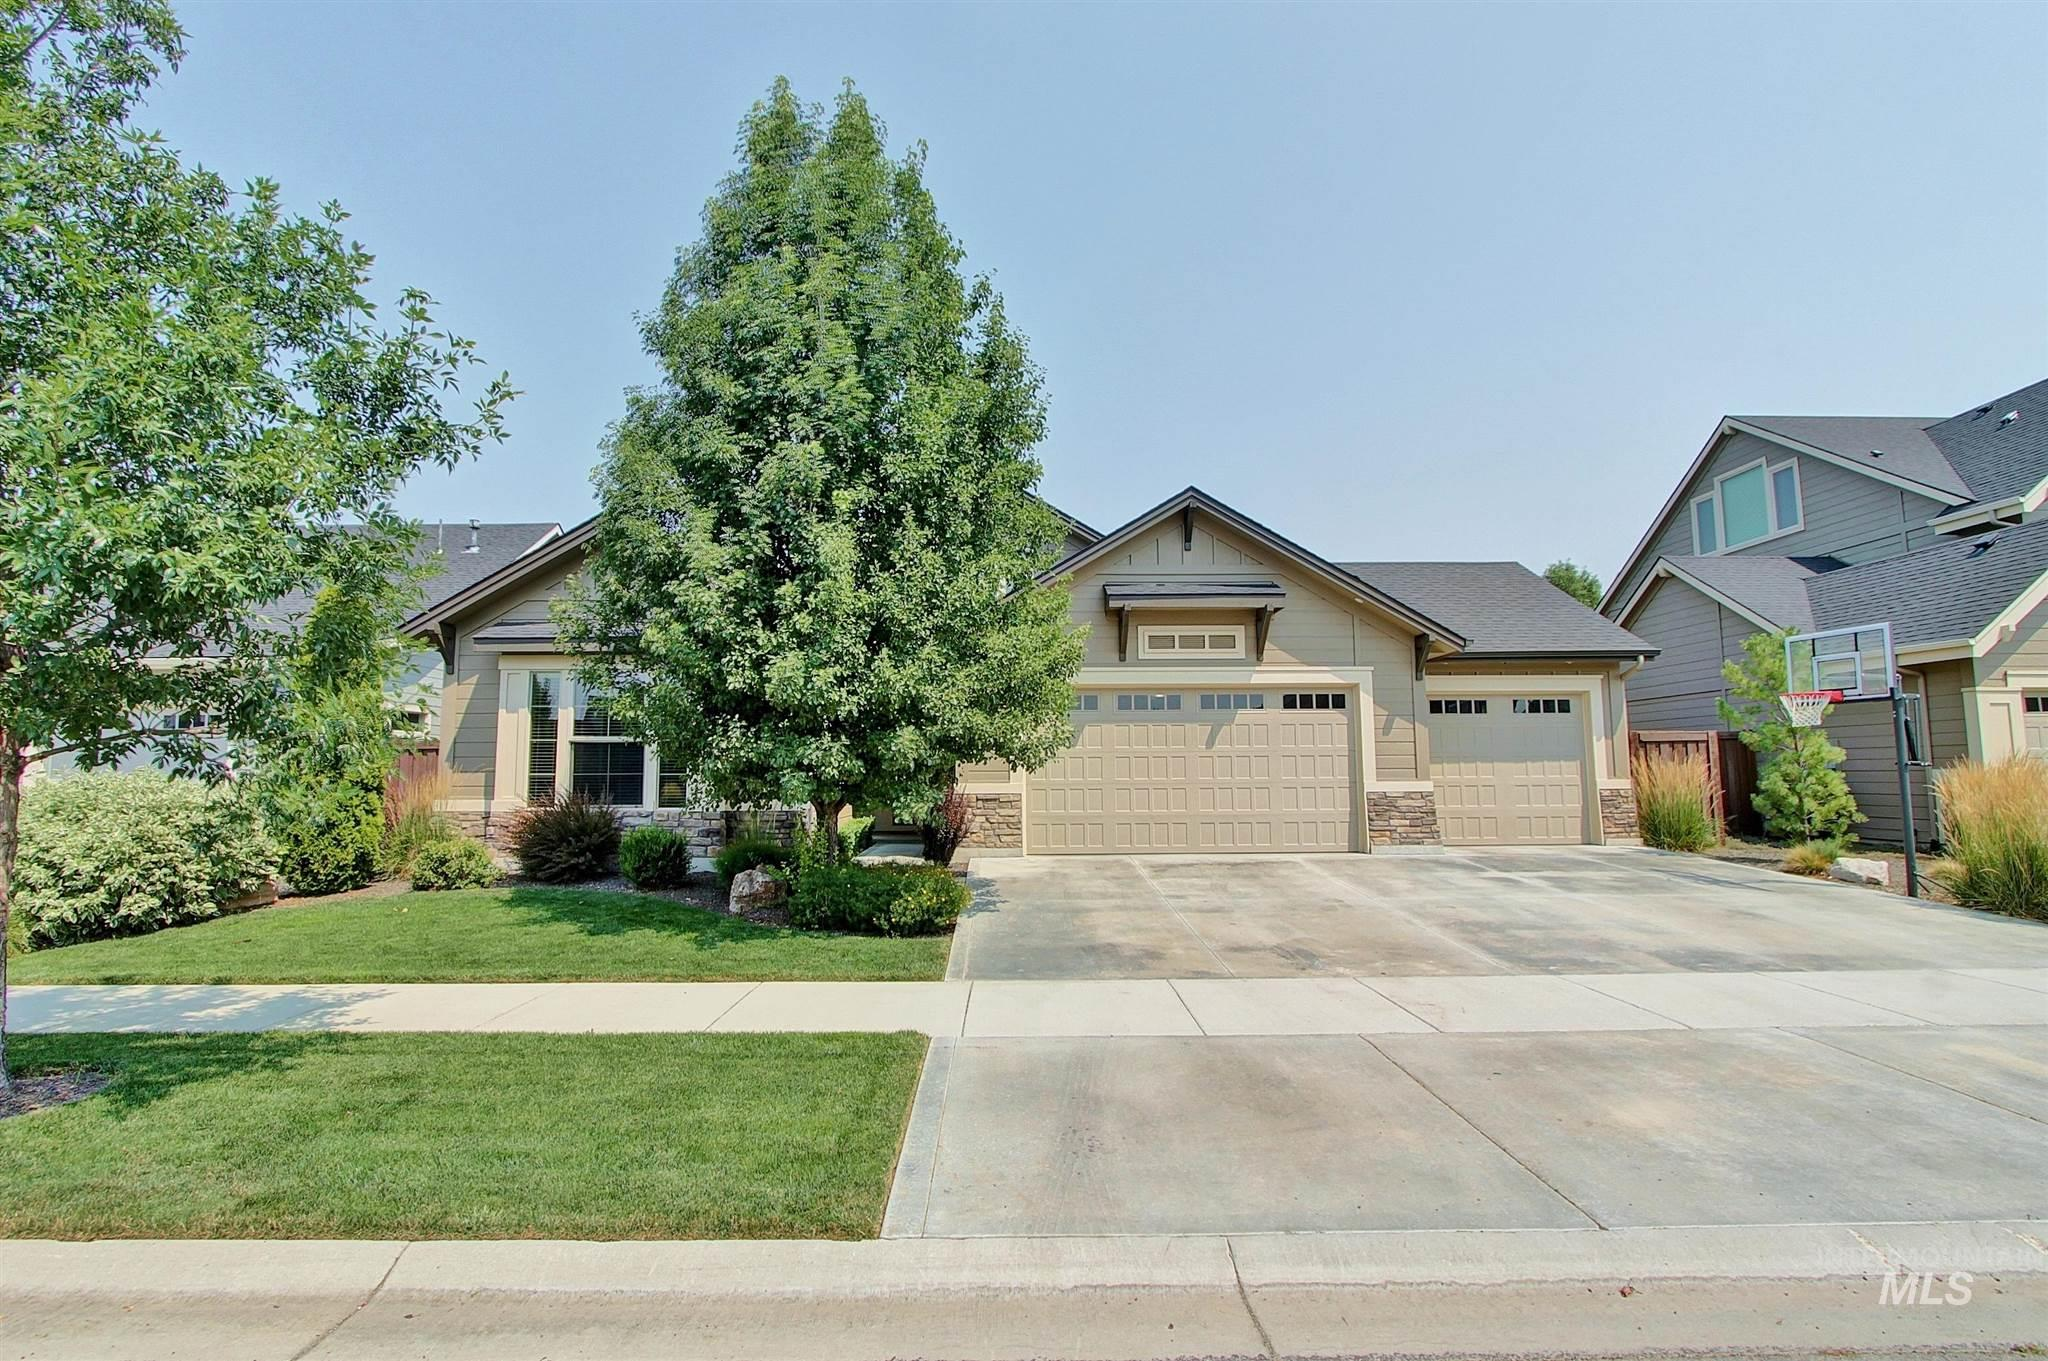 This beautiful Energy Star Certified single-level home w/bonus is sure to impress all who see it. Oak hardwood floors, high-end alder cabinets, & beautiful quartz slab countertops enhance the kitchen that features a new Bosch dishwasher, completing the stainless steel appliance package. An enlarged covered back patio is inviting after a long day while the oversized 3 car garage is perfect for all your toys or belongings. The community pool is within walking distance & the restaurants nearby will please you.